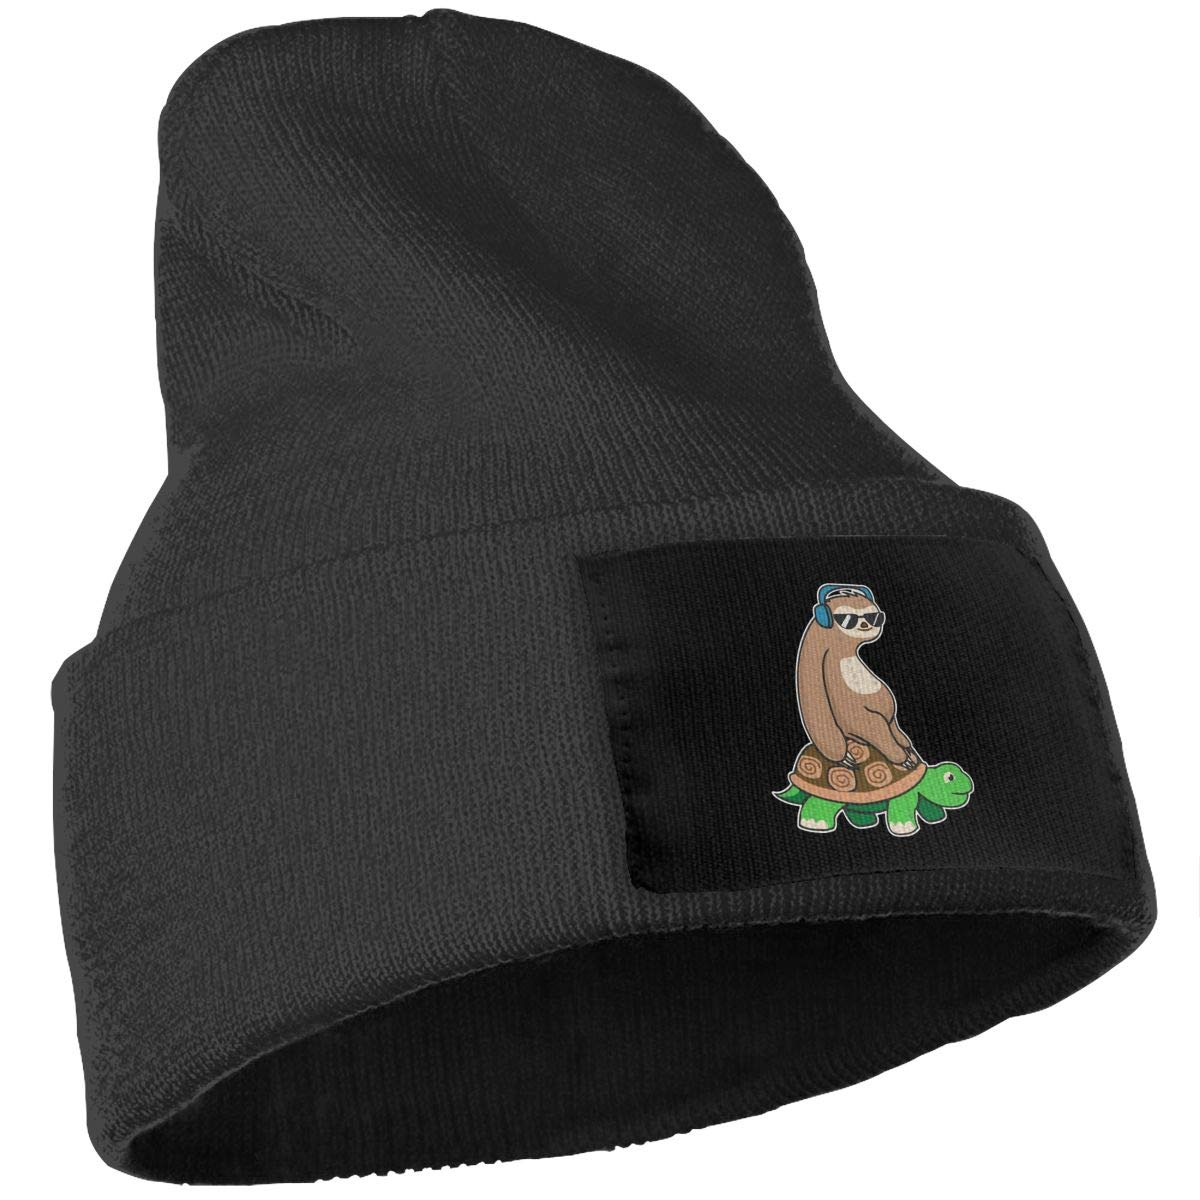 Unisex Sloth Ride Turtle Listen to Music Outdoor Warm Knit Beanies Hat Soft Winter Knit Caps